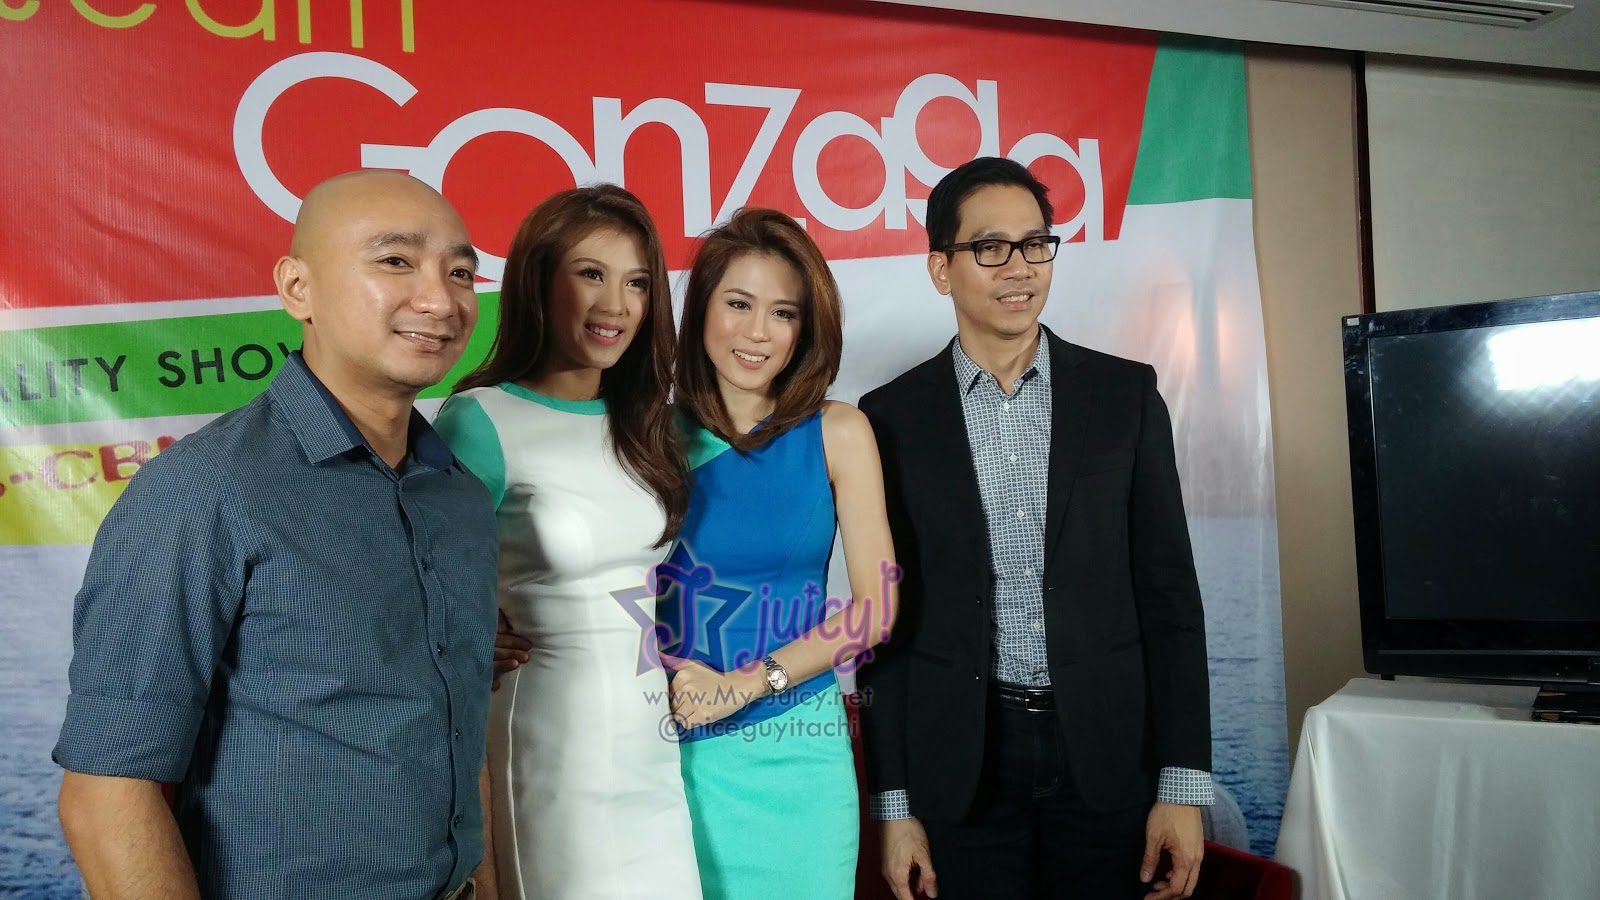 Team Gonzaga - ABS CBN Mobile